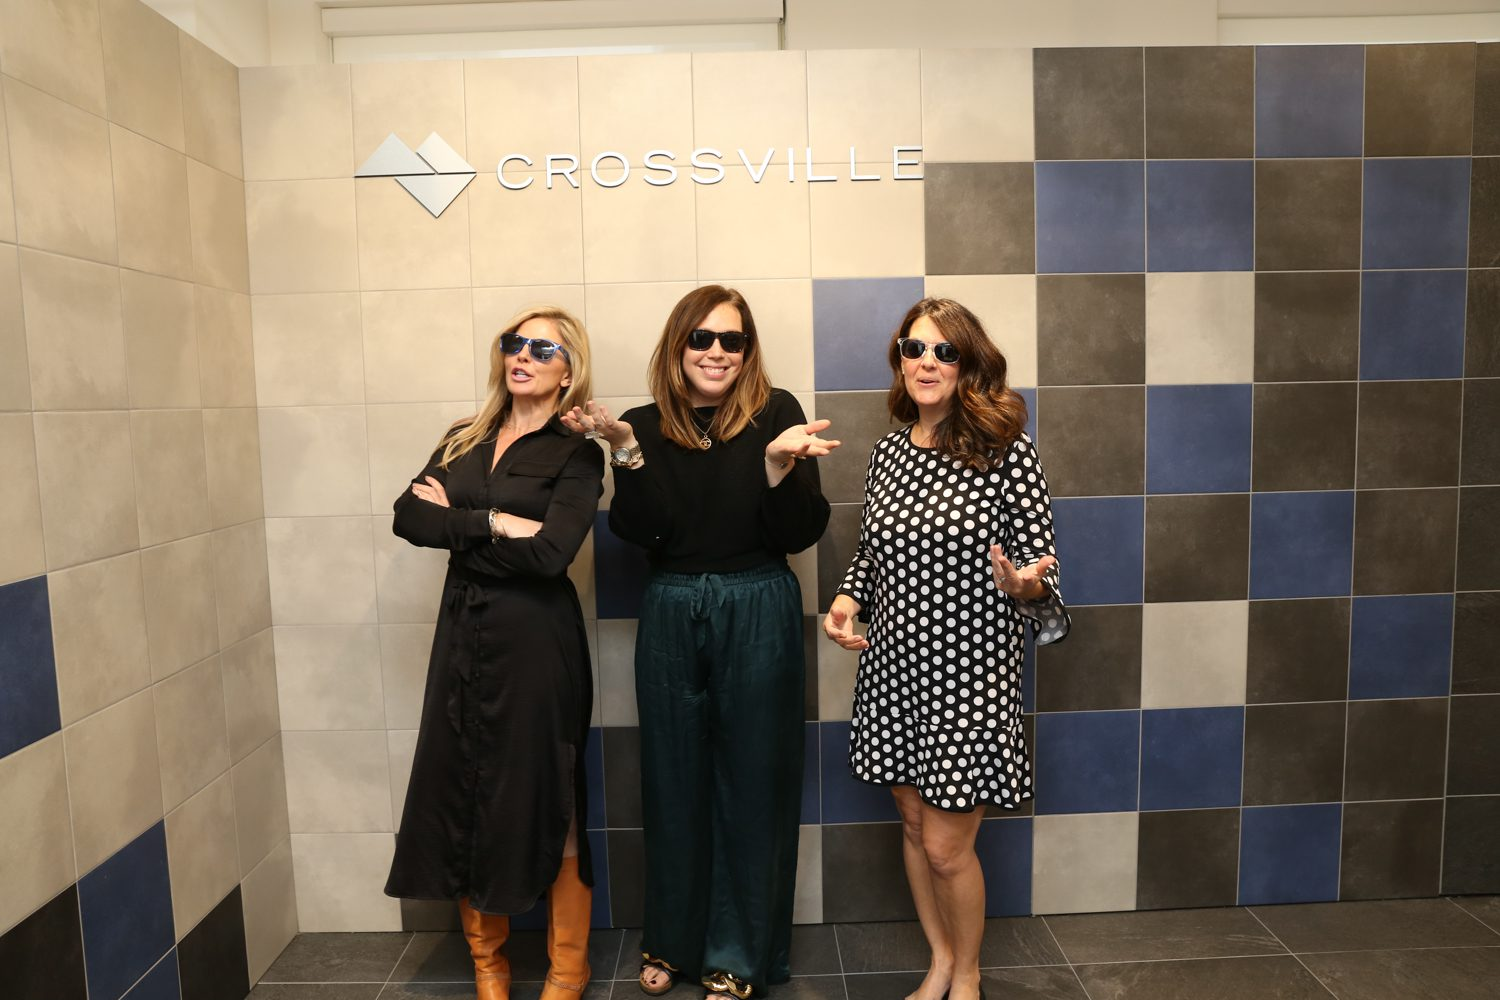 Crossville's Brooke Dominy, hospitality and management, Tori Ross, national sales, and Melanie Tatum, a&d, with the brand's Porcelain tile.